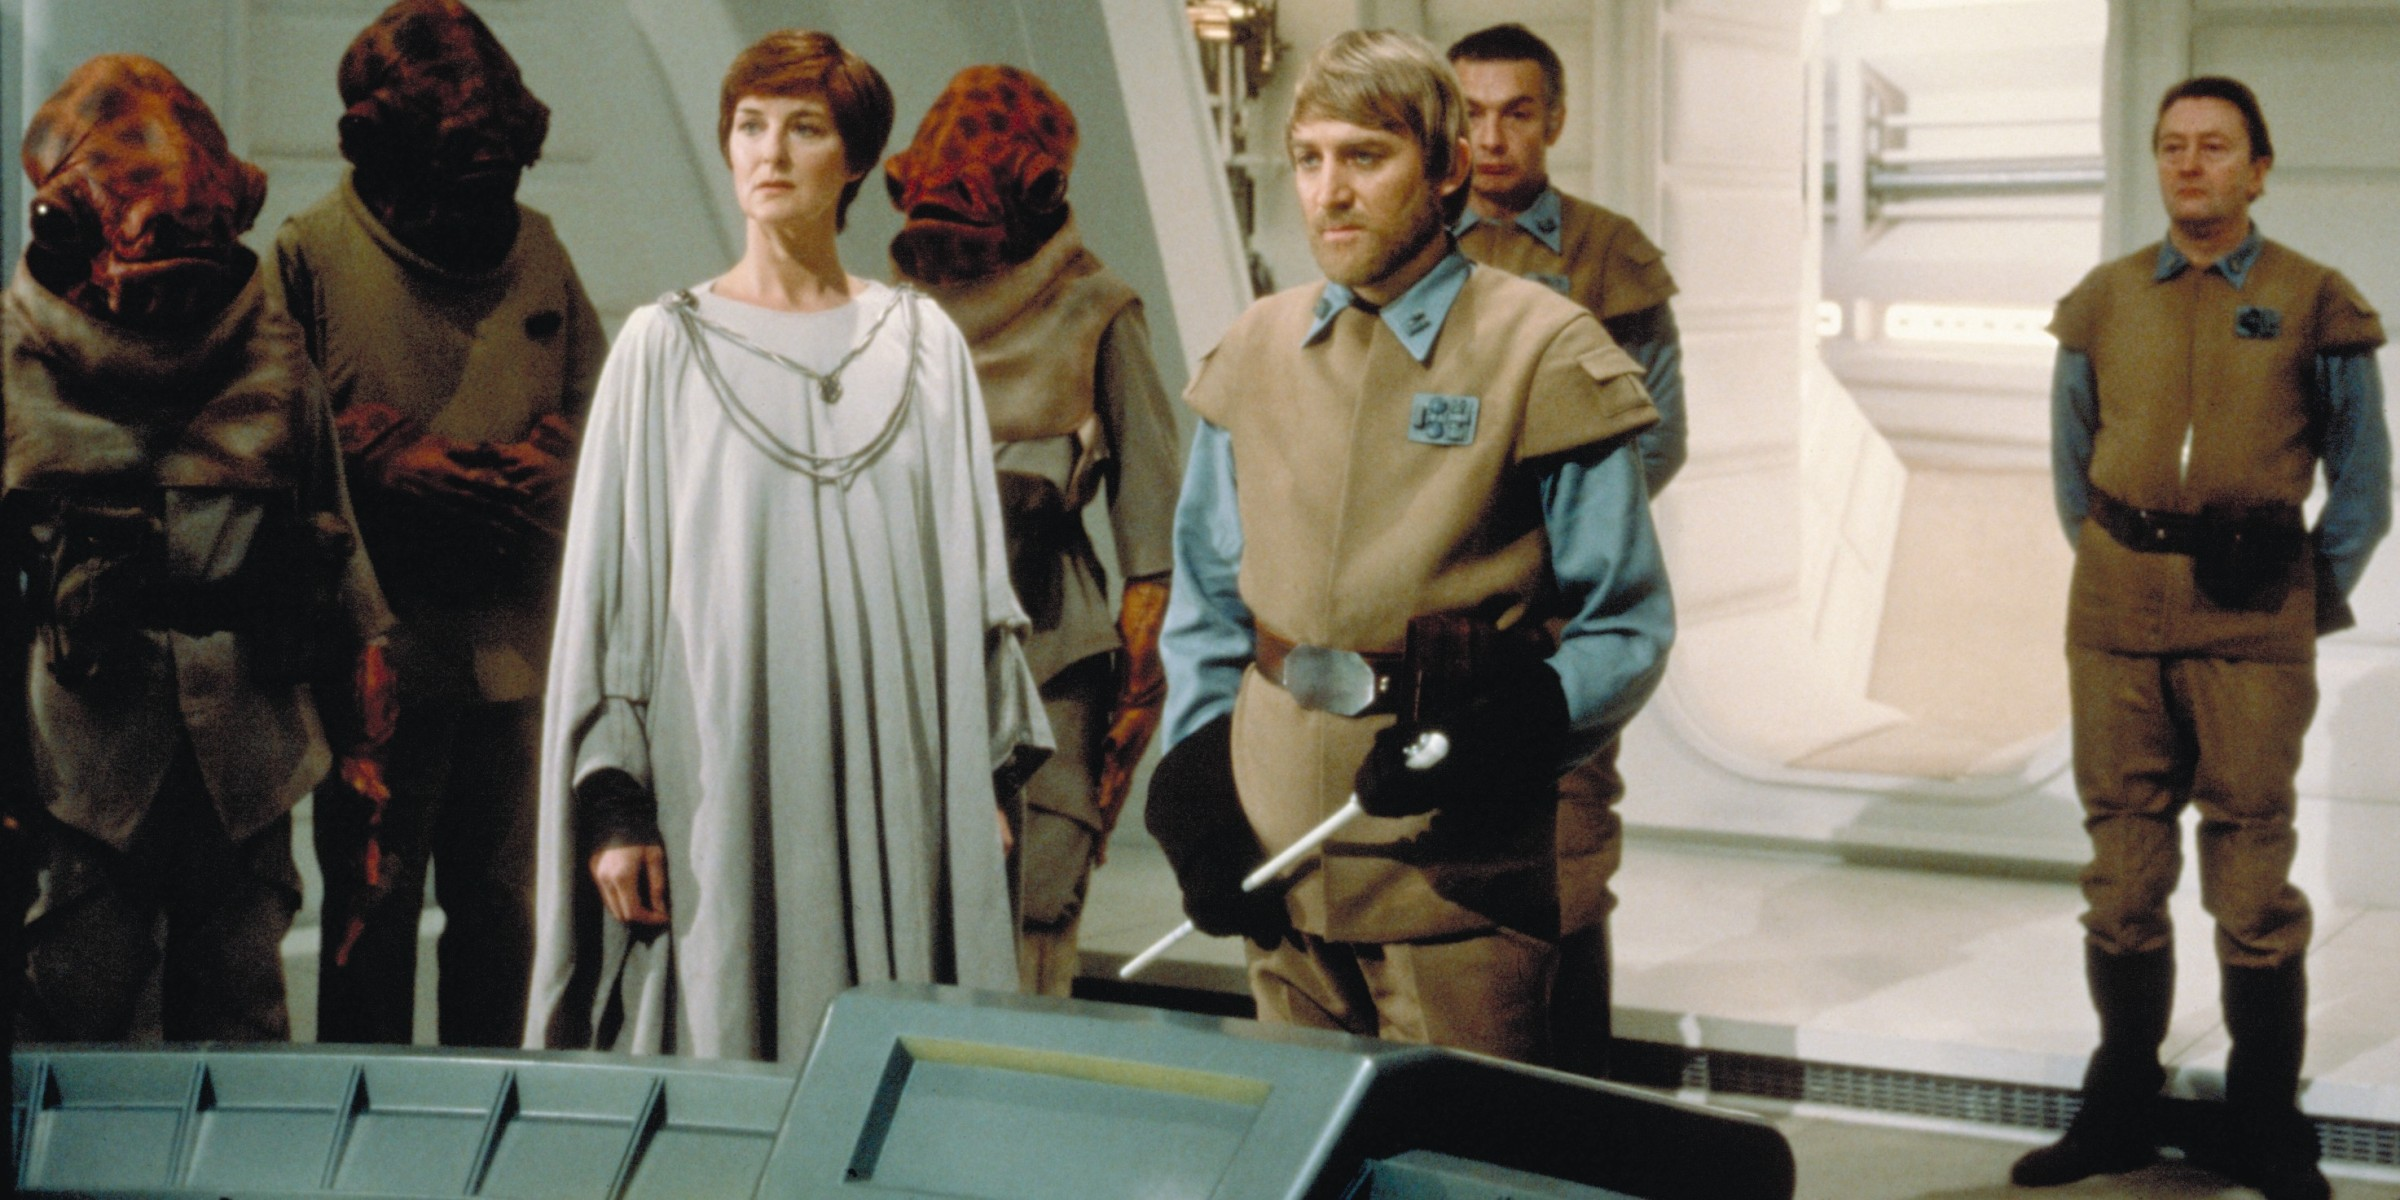 Mon Mothma - Return of the Jedi